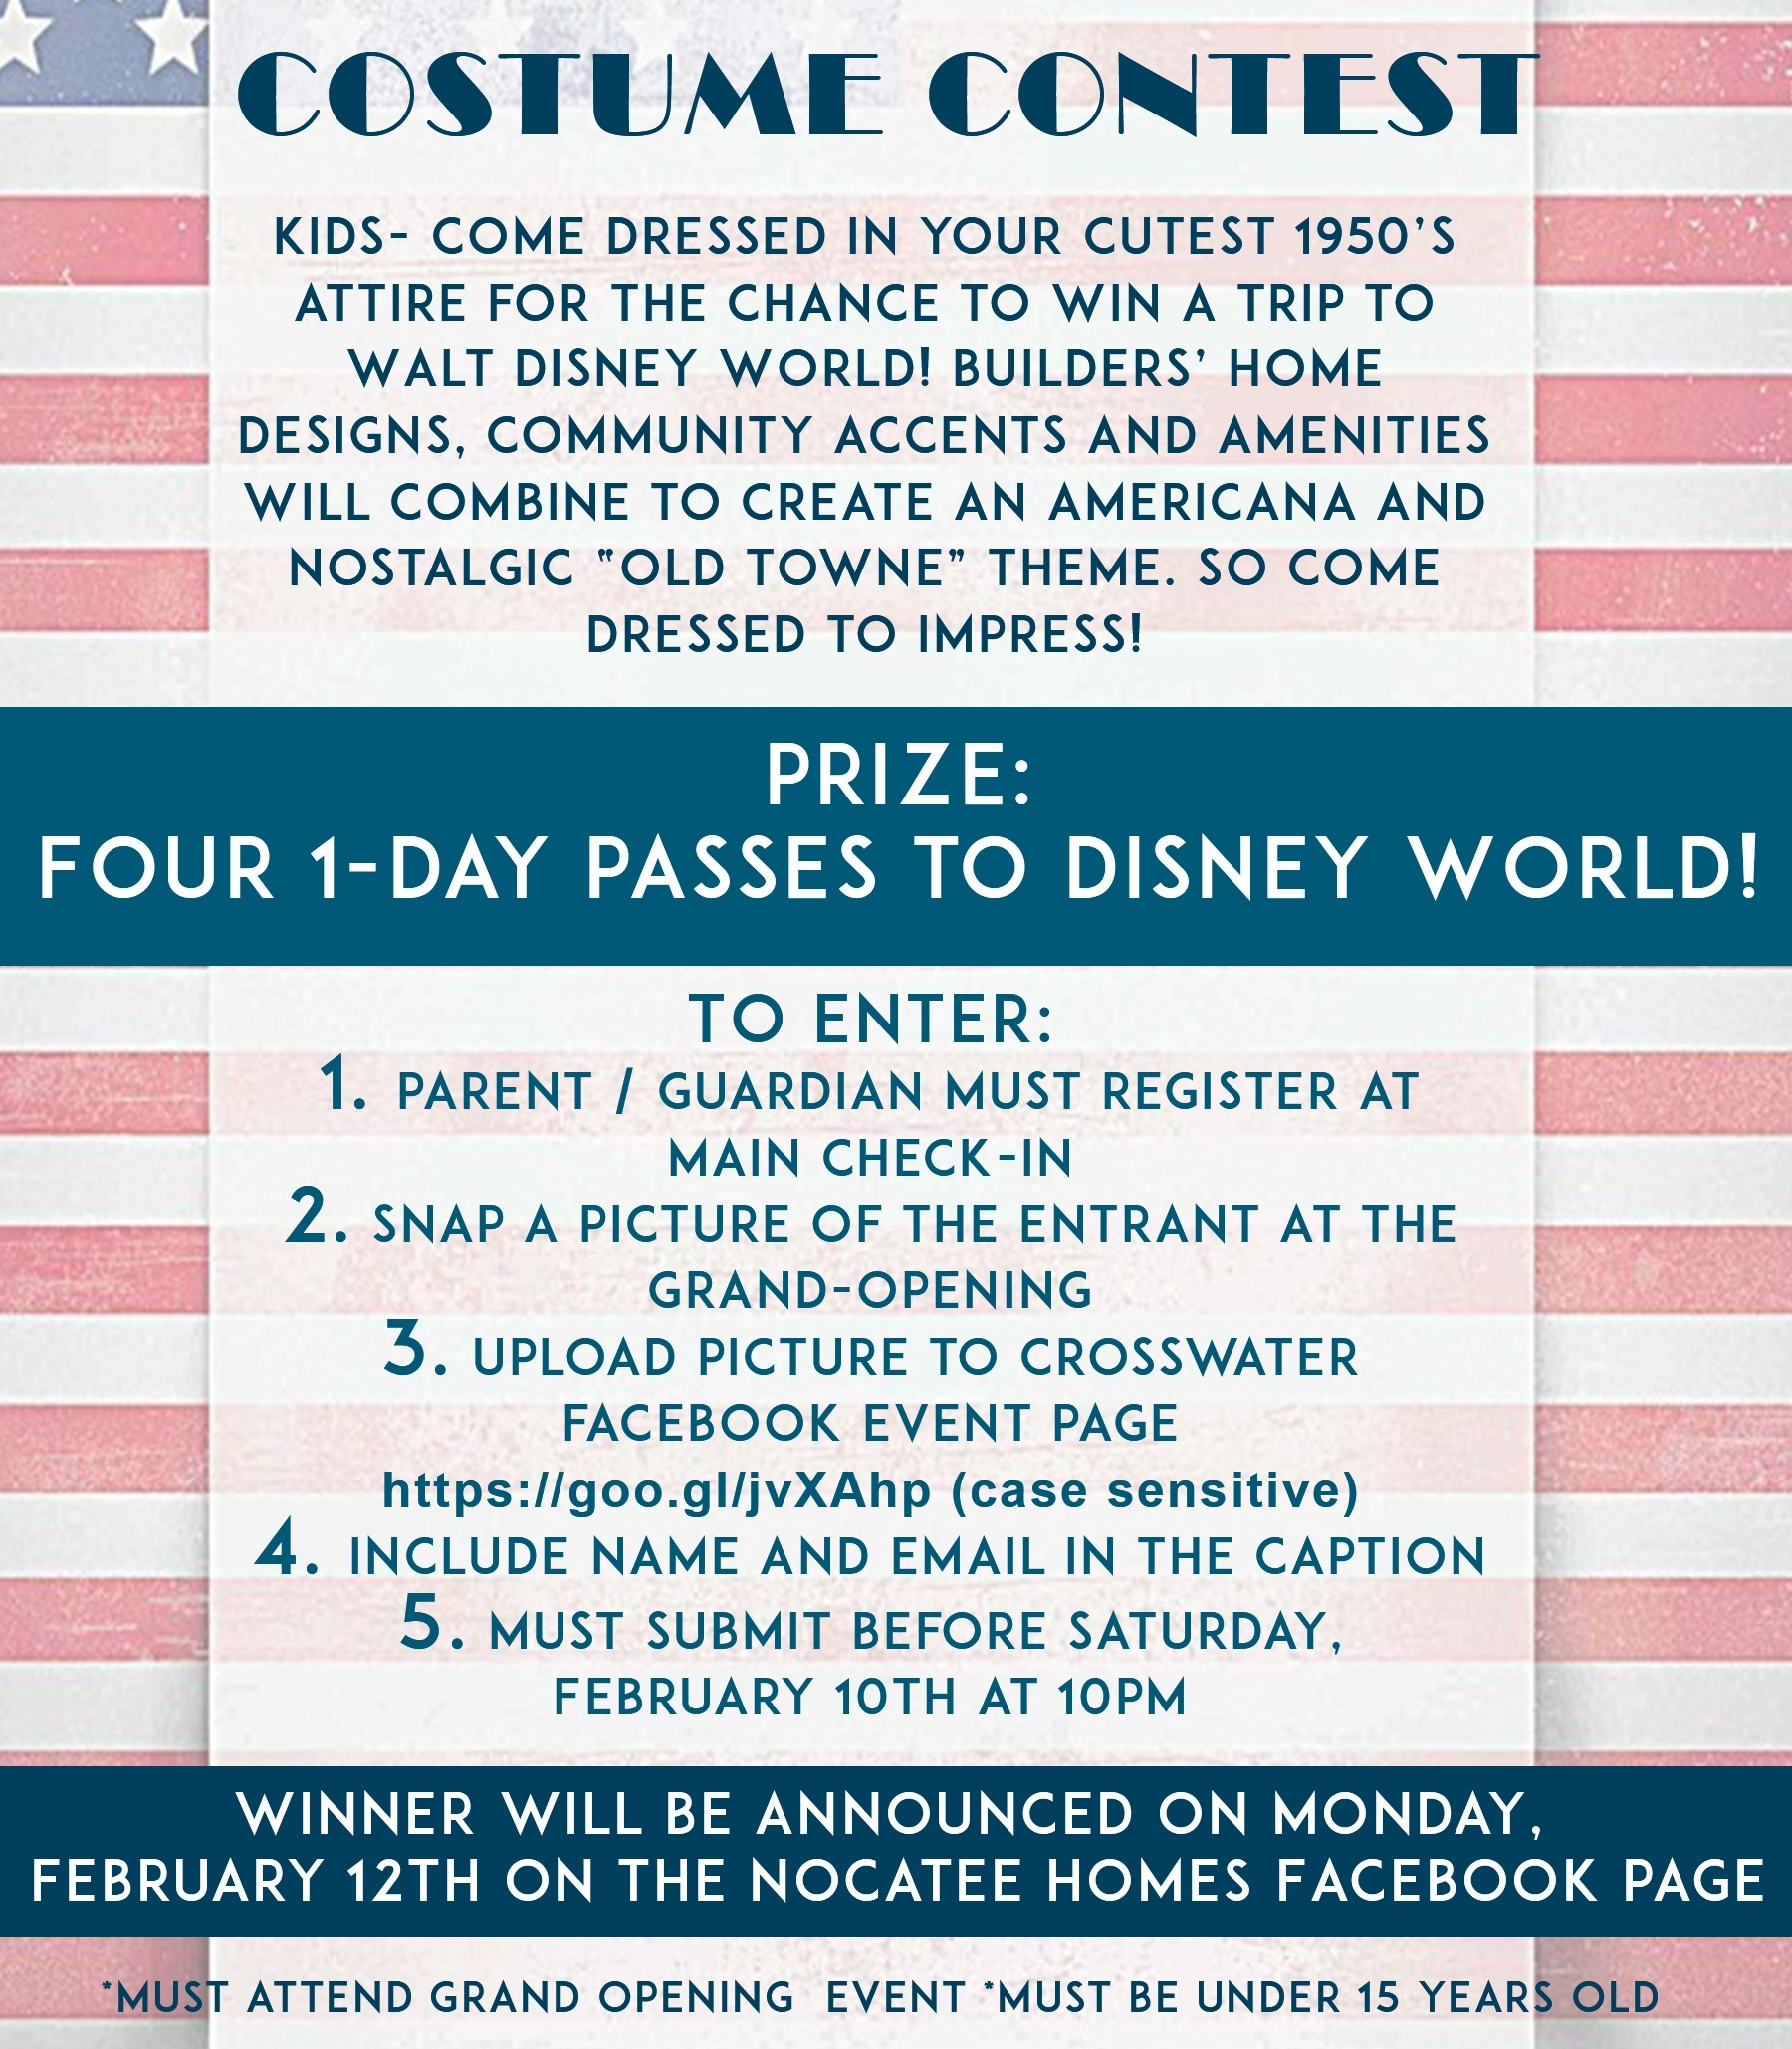 Crosswater Grand-Opening Costume Contest Guidelines